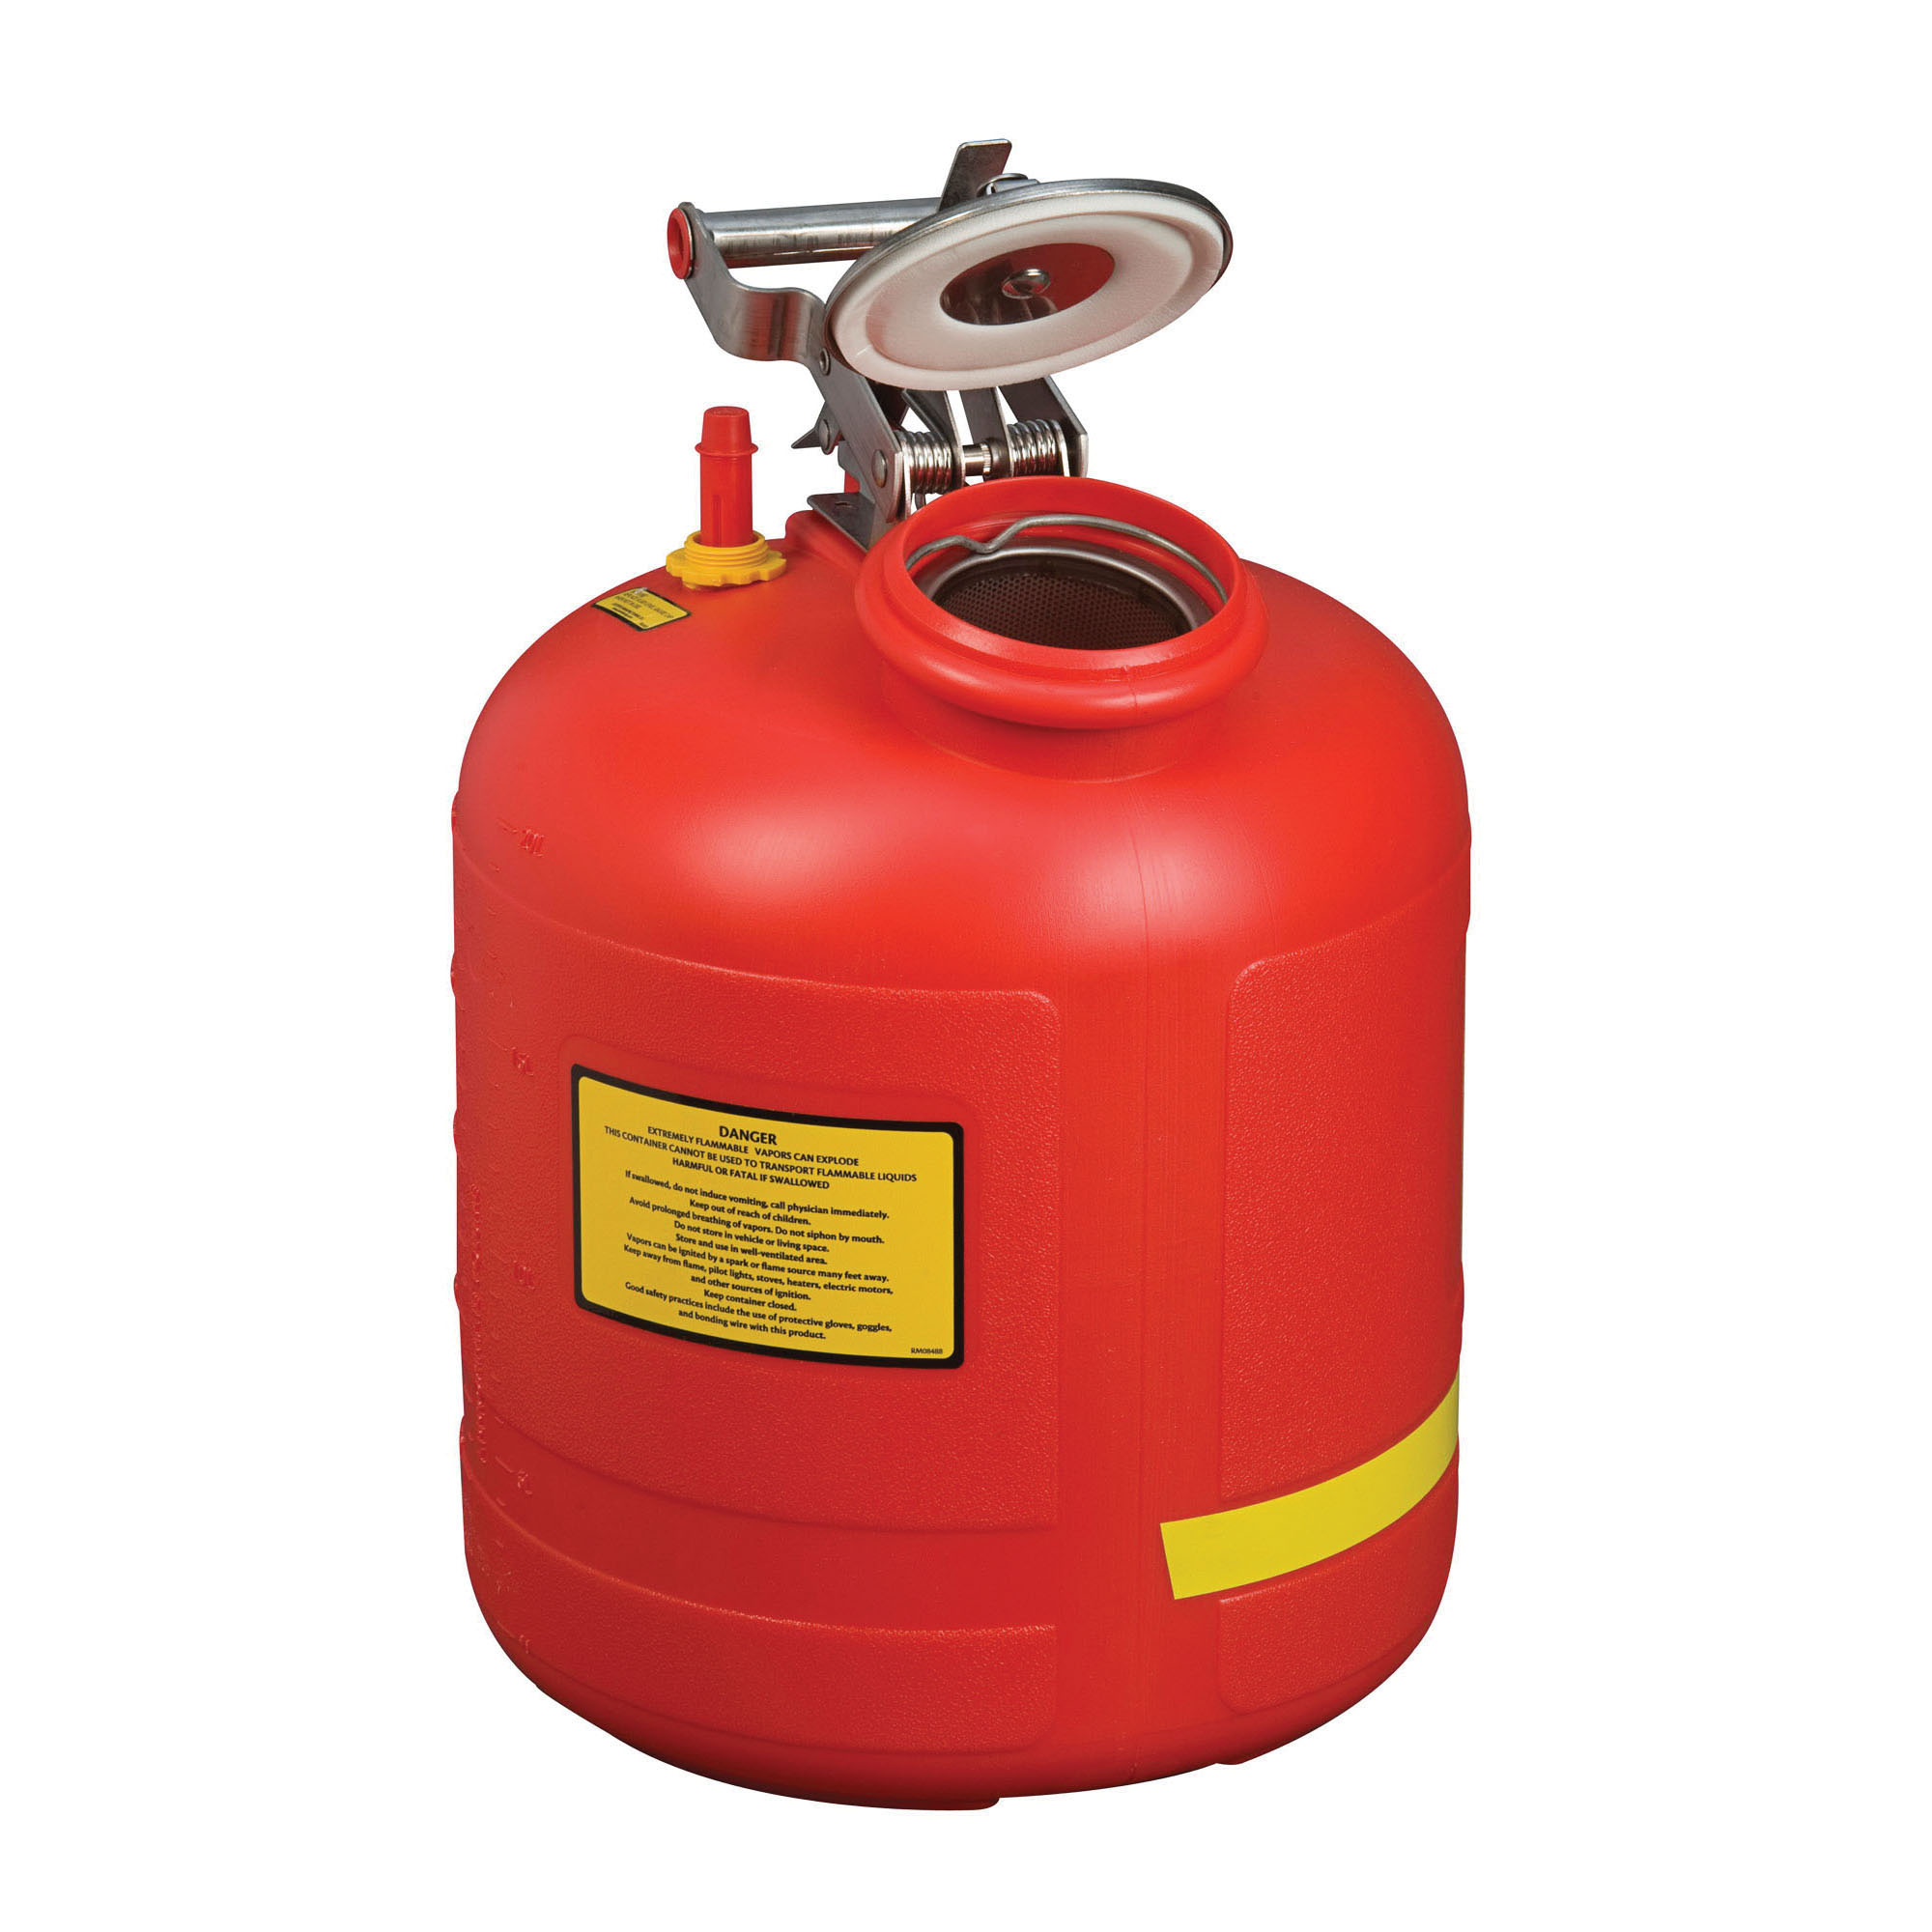 Justrite® 14565 Liquid Disposal Safety Can With Stainless Steel Hardware, 5 gal Capacity, 12 in Dia, 20 in H, Polyethylene, Red, OSHA Approved, NFPA Compliant